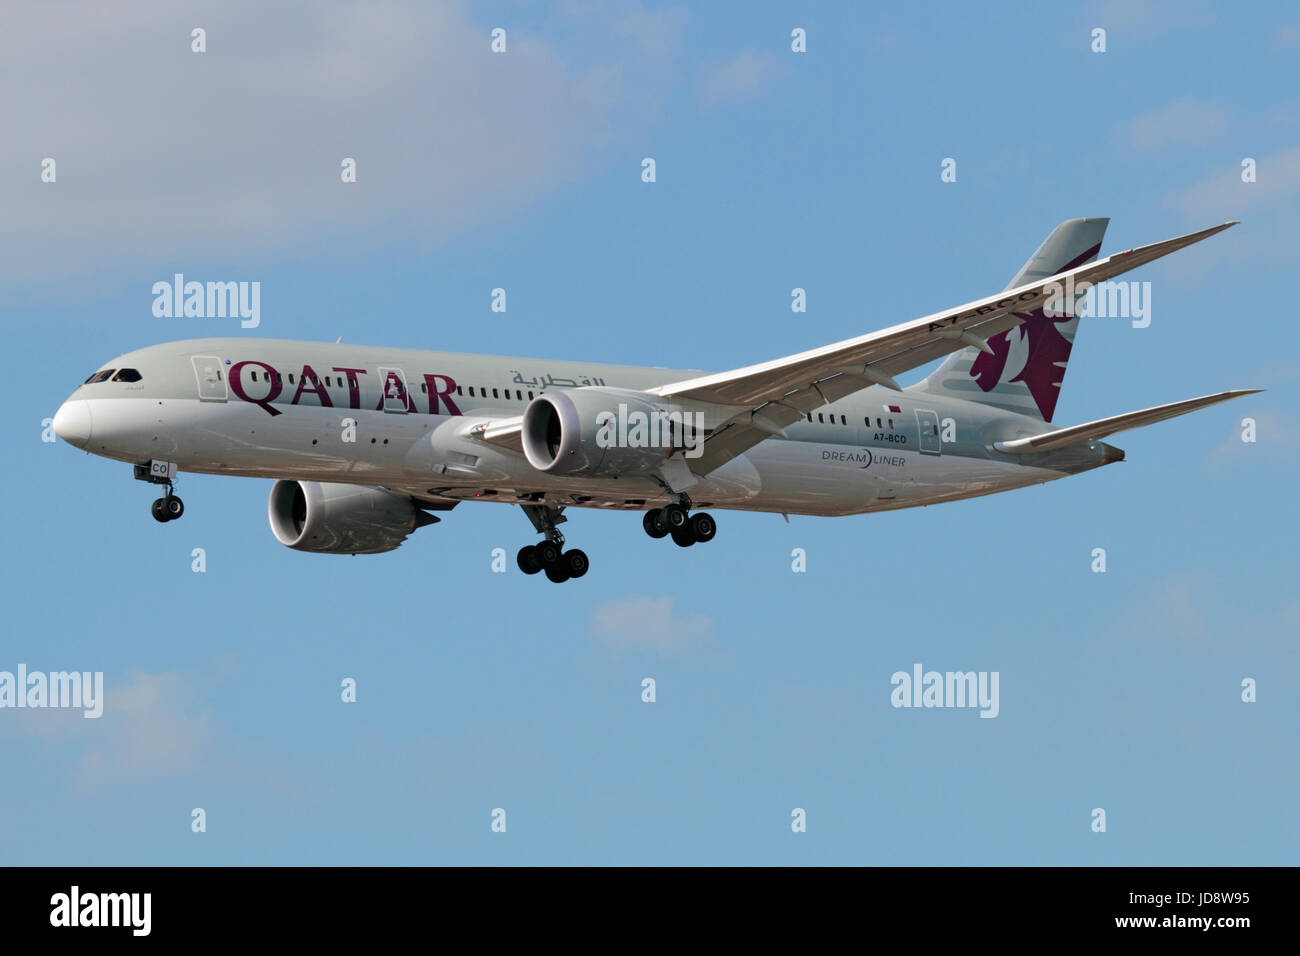 Commercial air travel. Qatar Airways Boeing 787-8 Dreamliner widebody passenger jet on approach Stock Photo